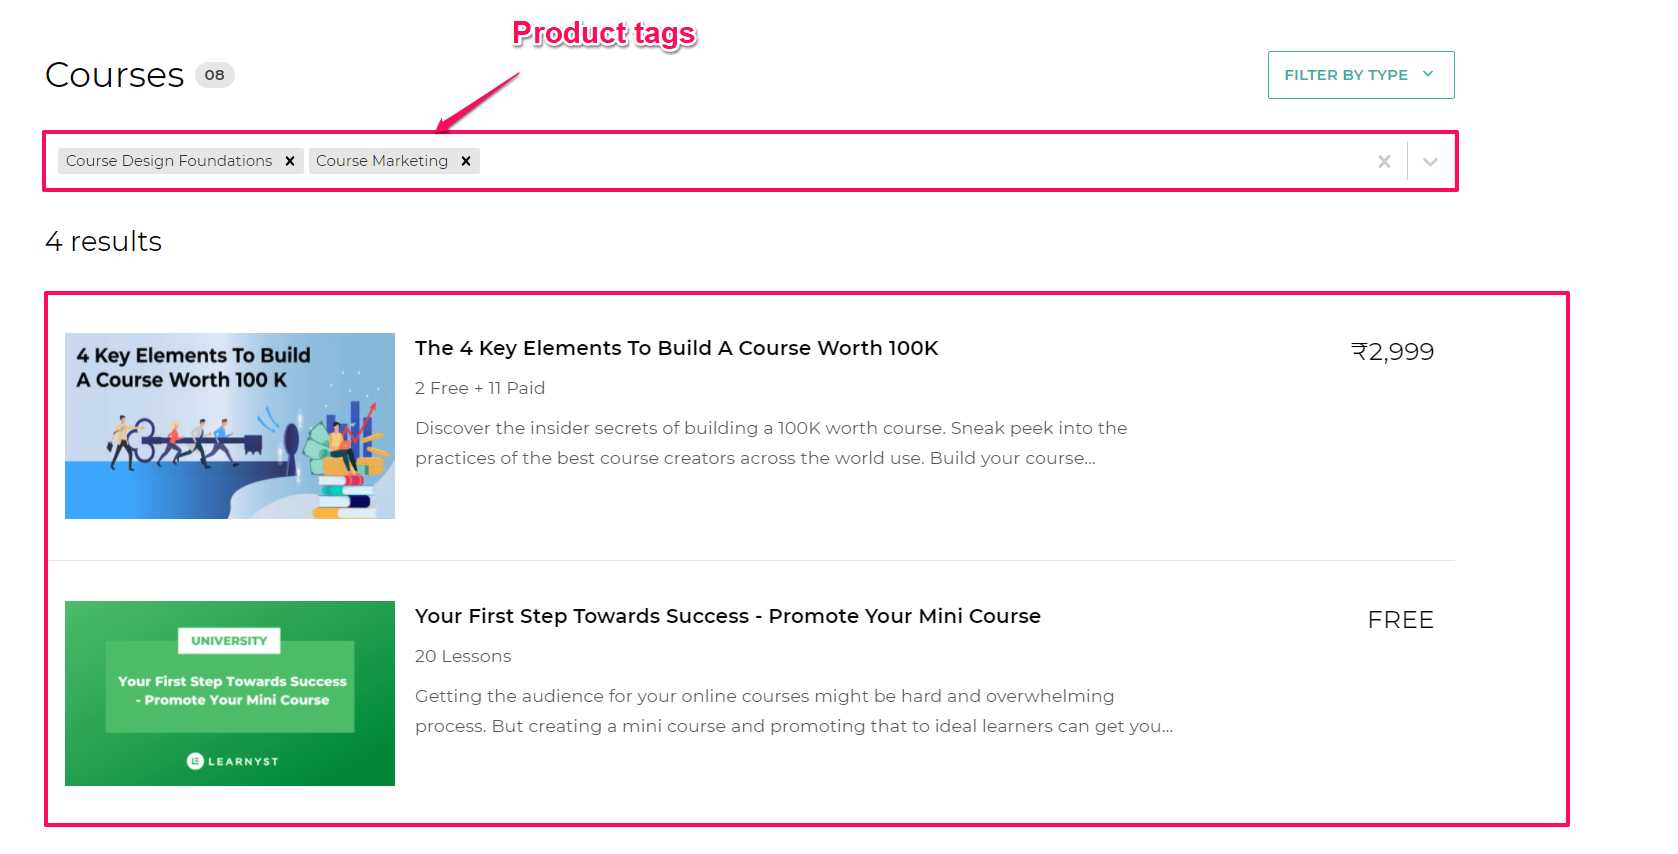 content tagging your course using product tag